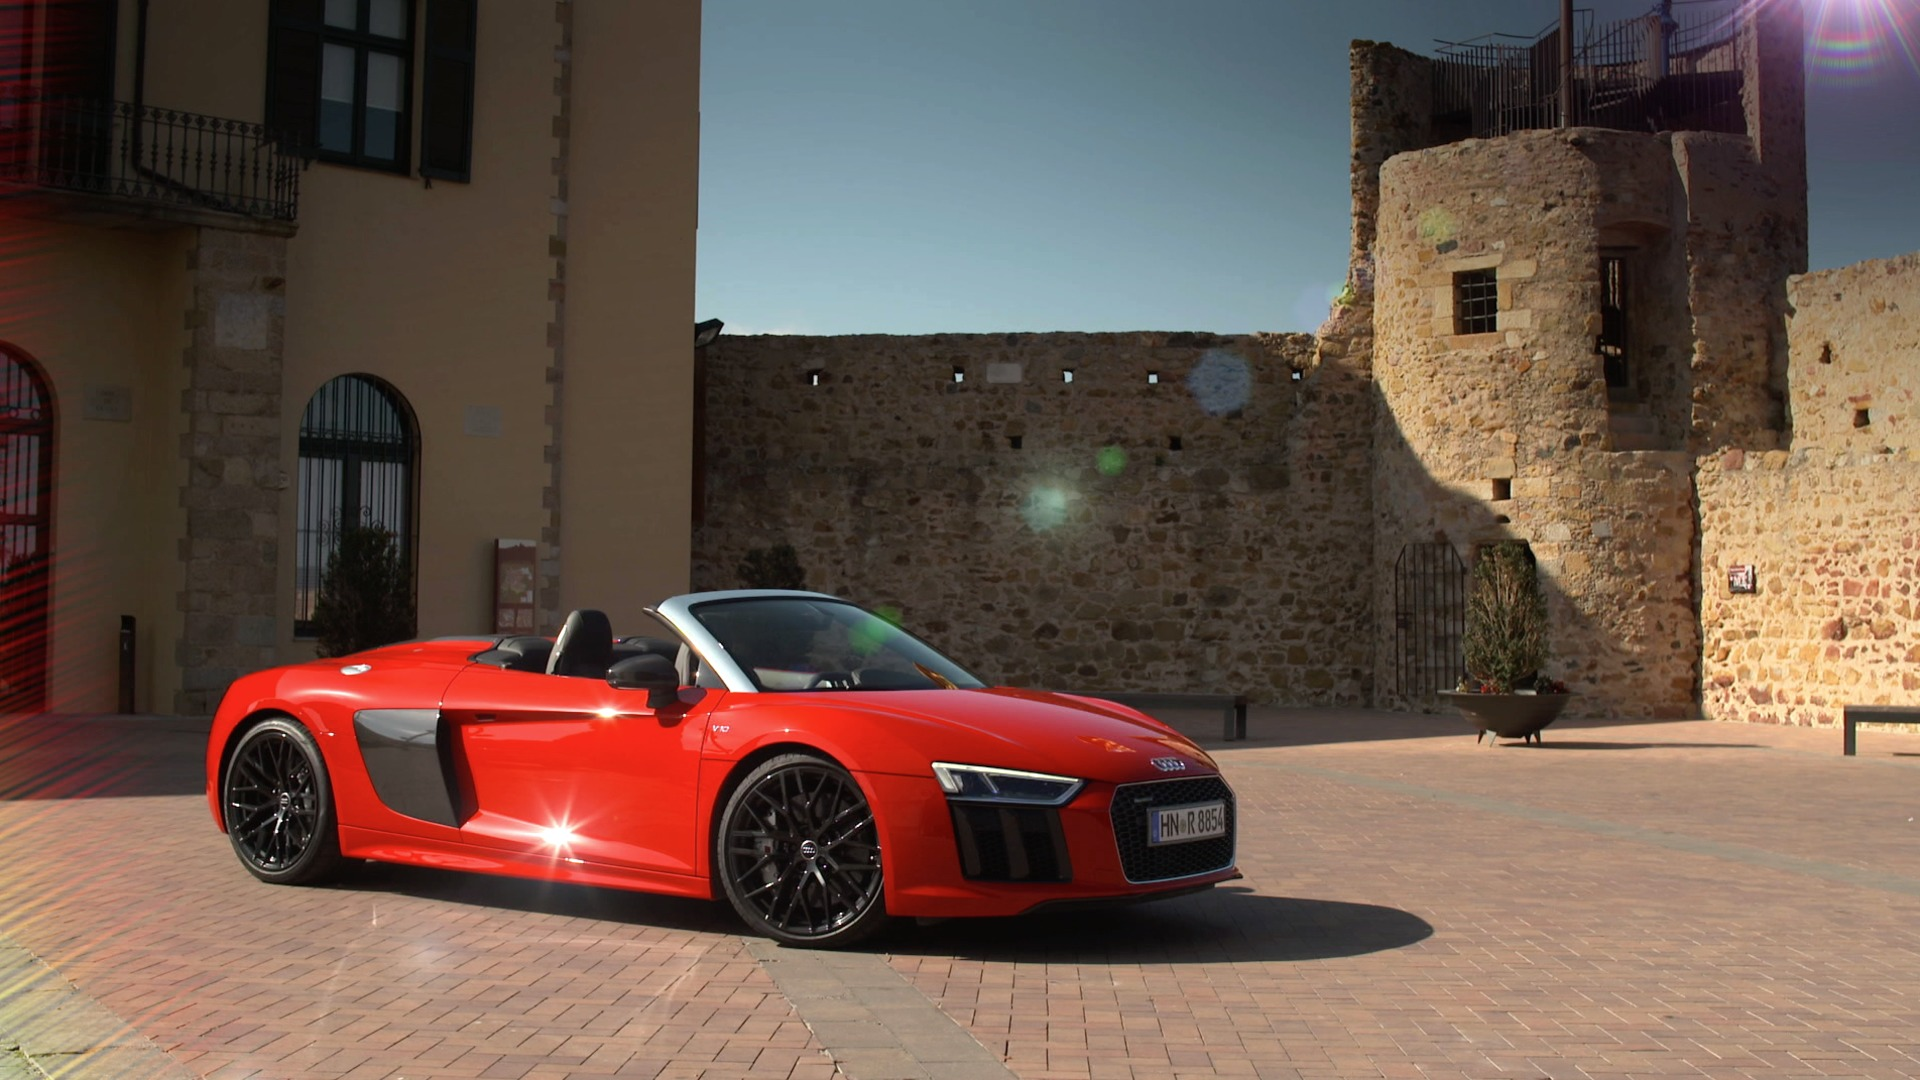 Power all along the line: the Audi R8 Spyder